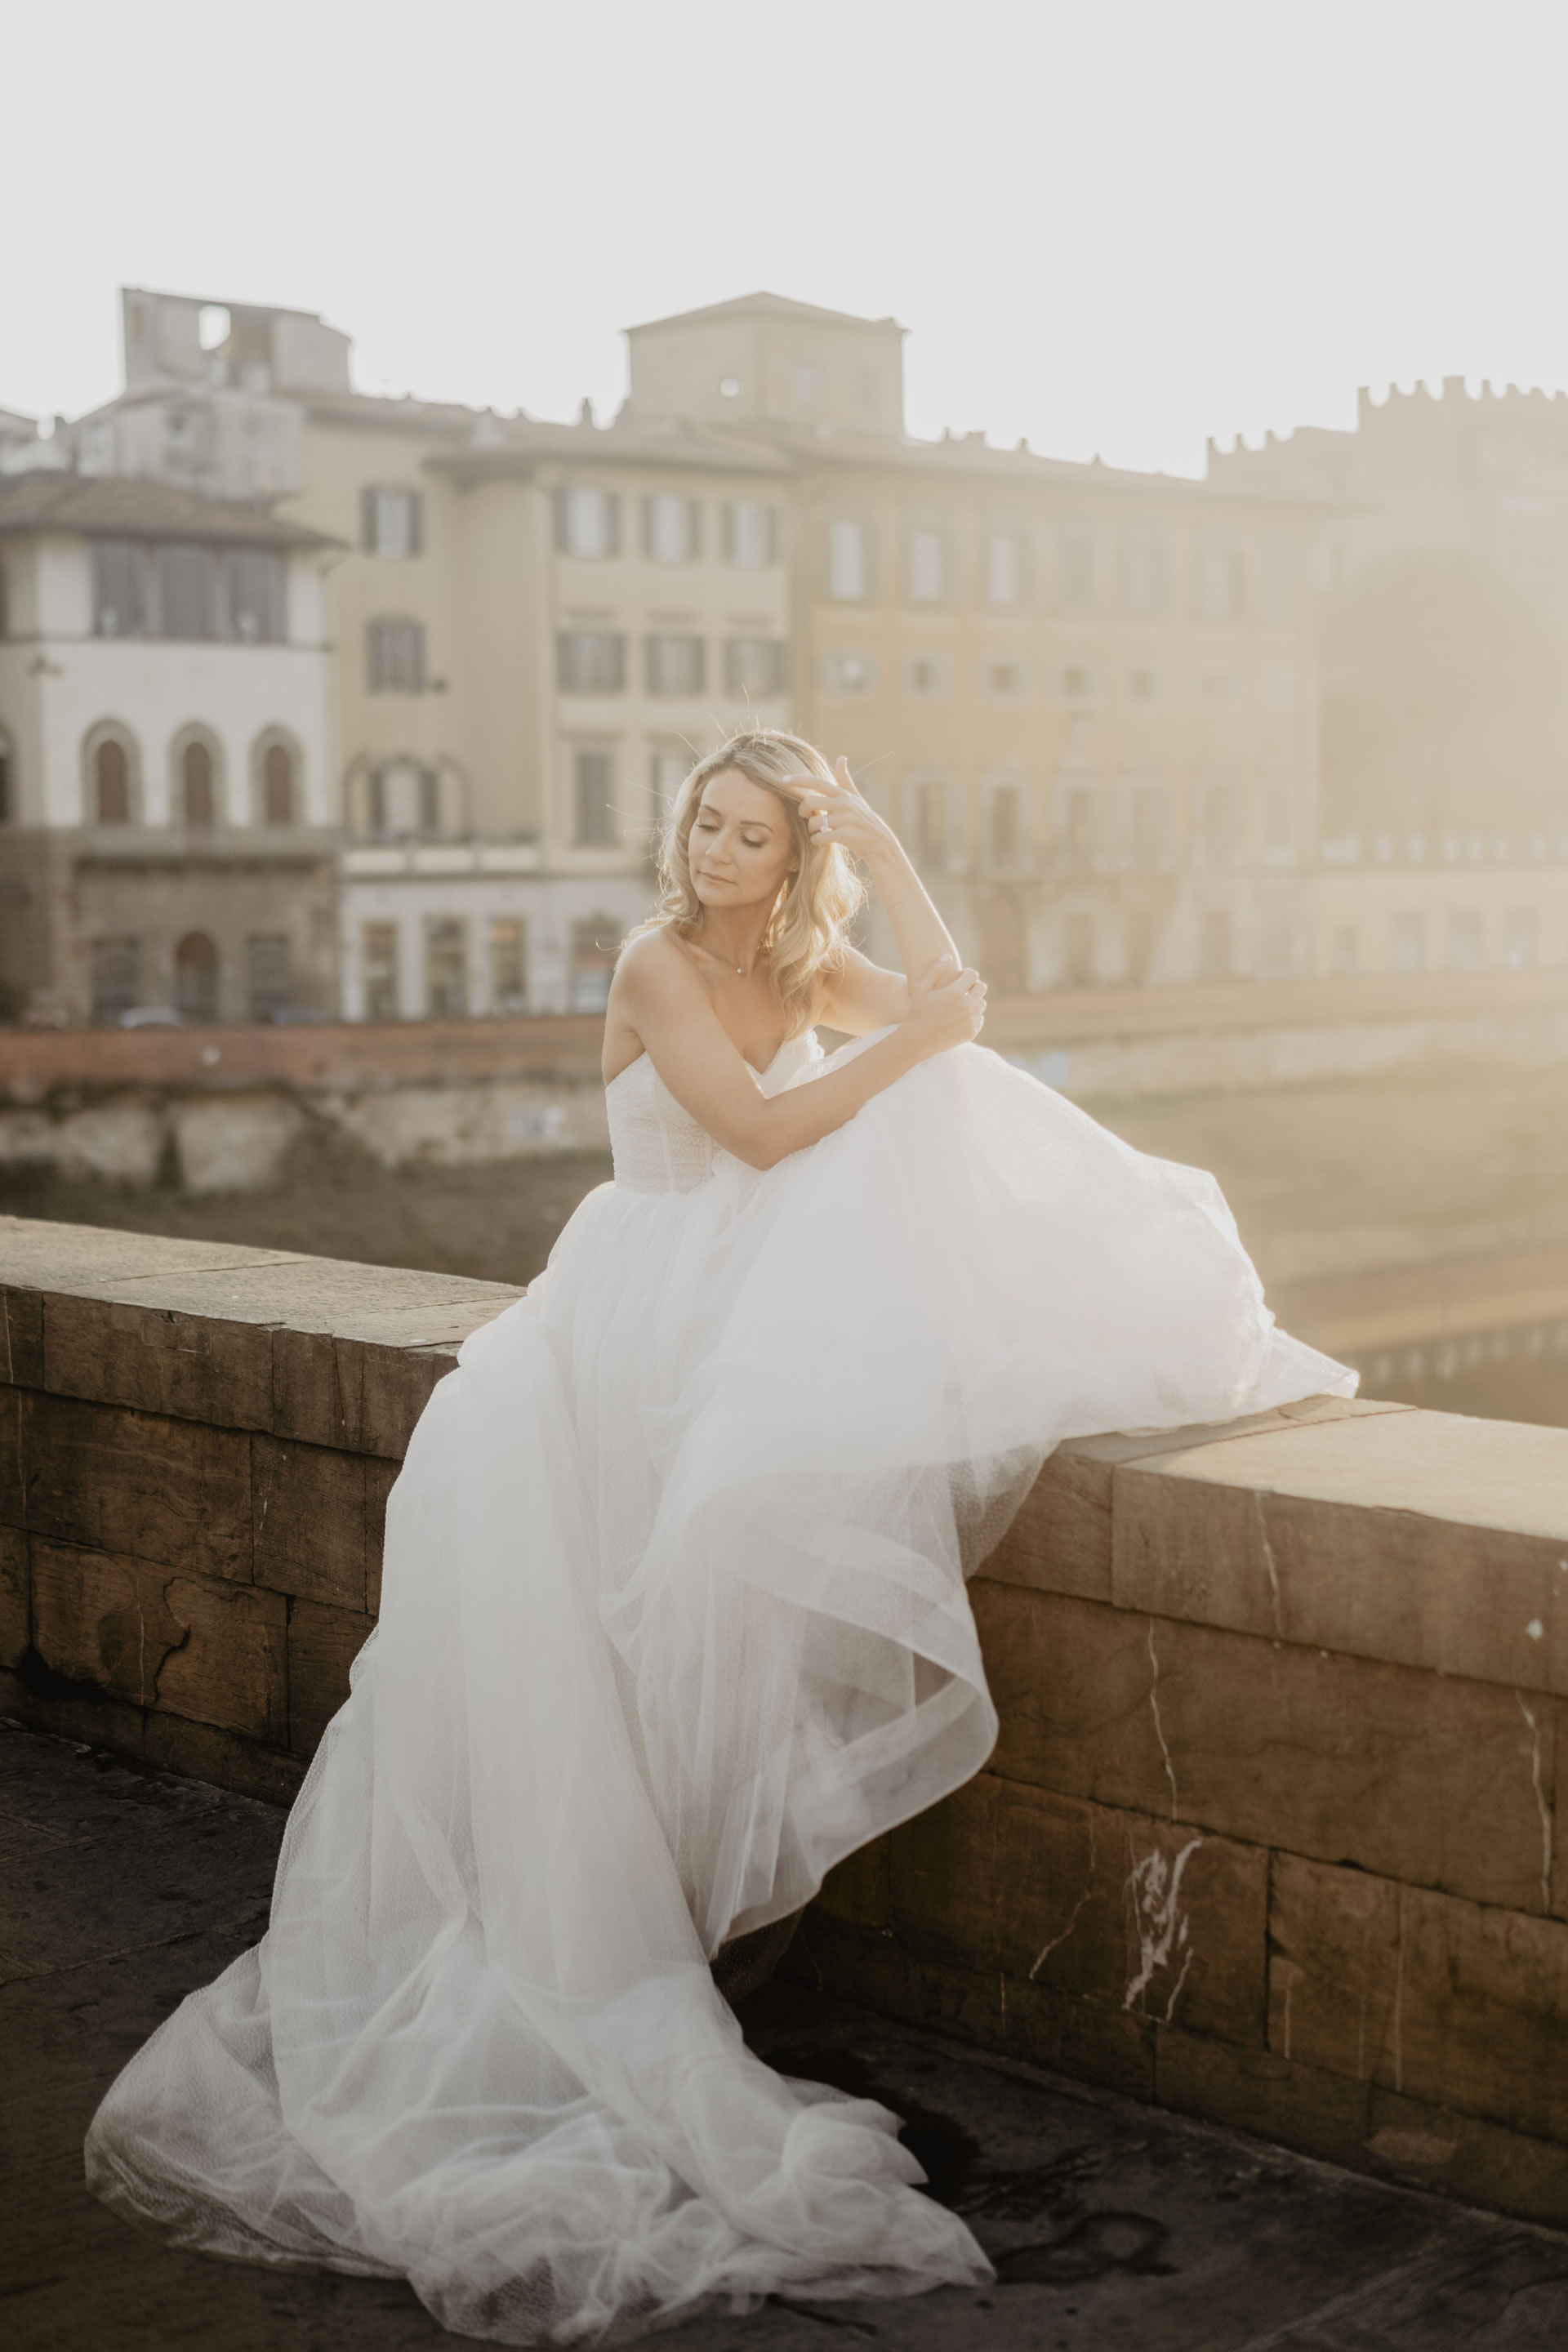 A sparkling wedding in the shore of the Arno - 55 :: A sparkling wedding on the shore of the Arno :: Luxury wedding photography - 54 :: A sparkling wedding in the shore of the Arno - 55